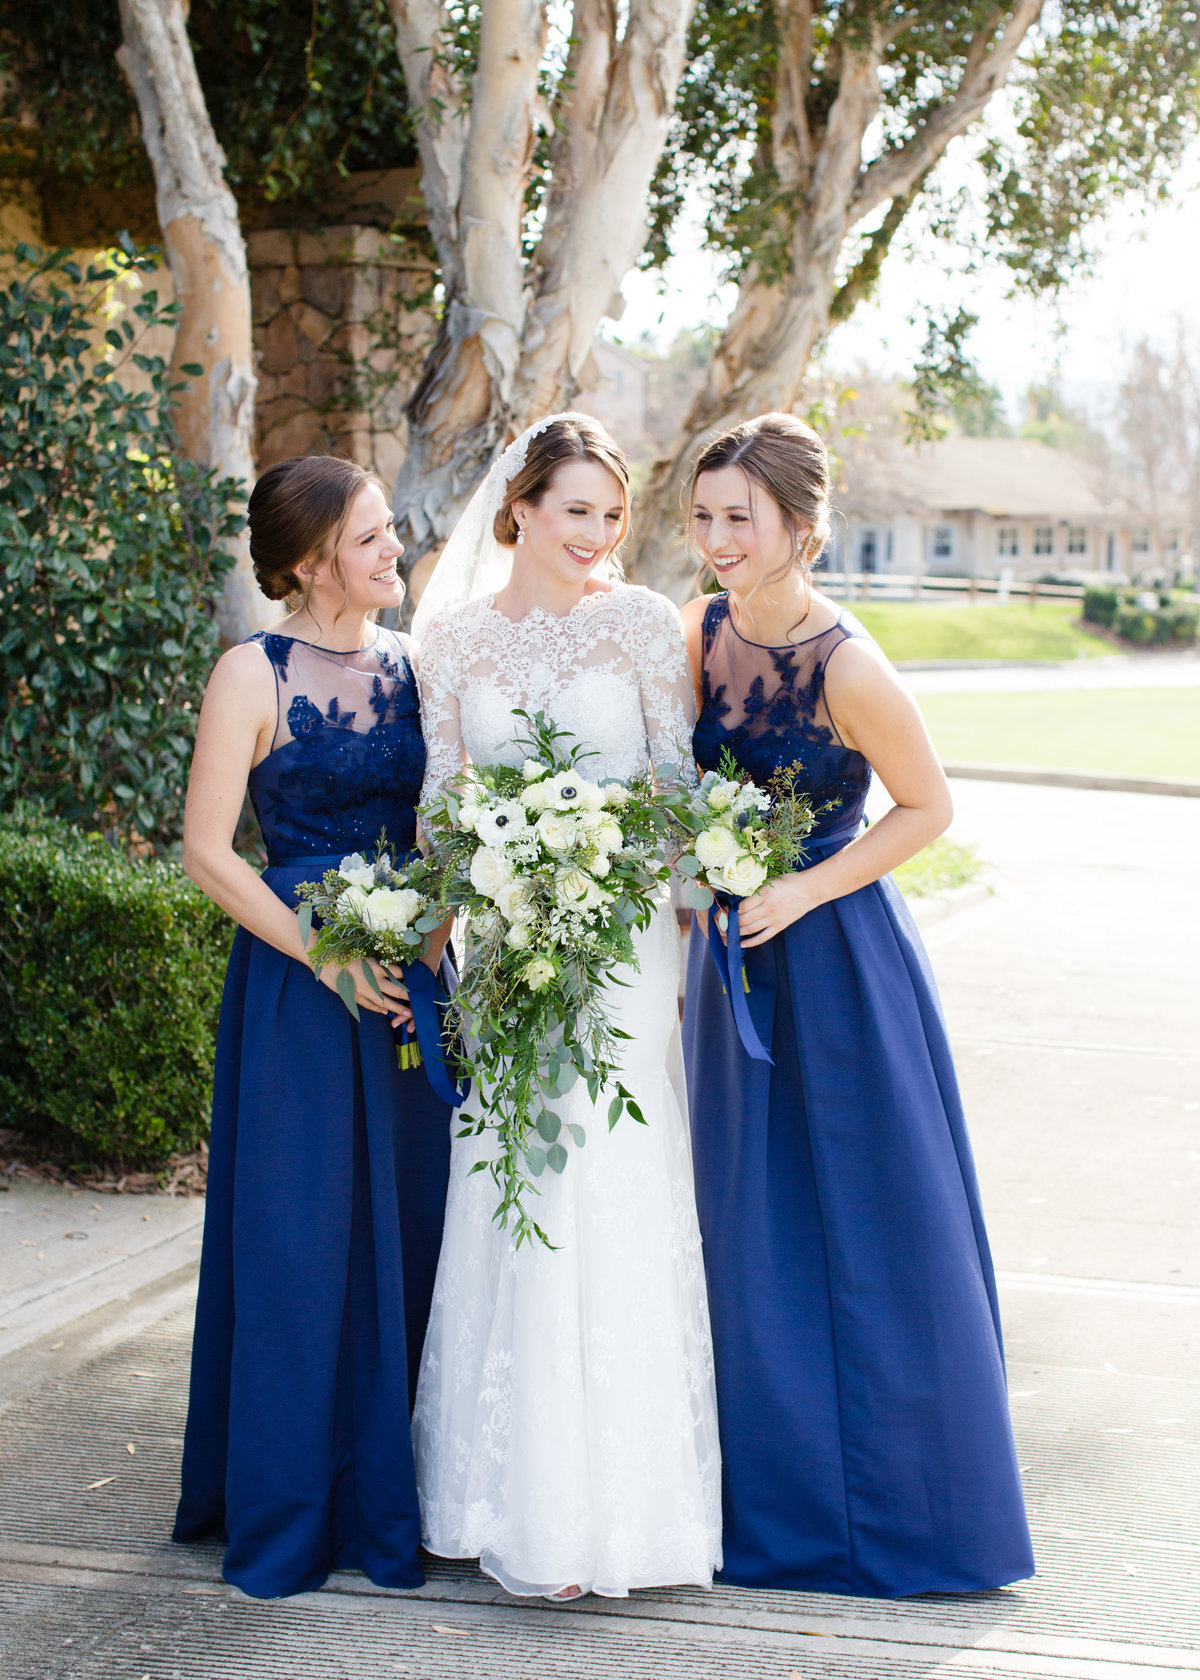 Katherine_beth_photography_San_diego_wedding_photographer_san_diego_wedding_twin_oaks_golf_course_wedding_003